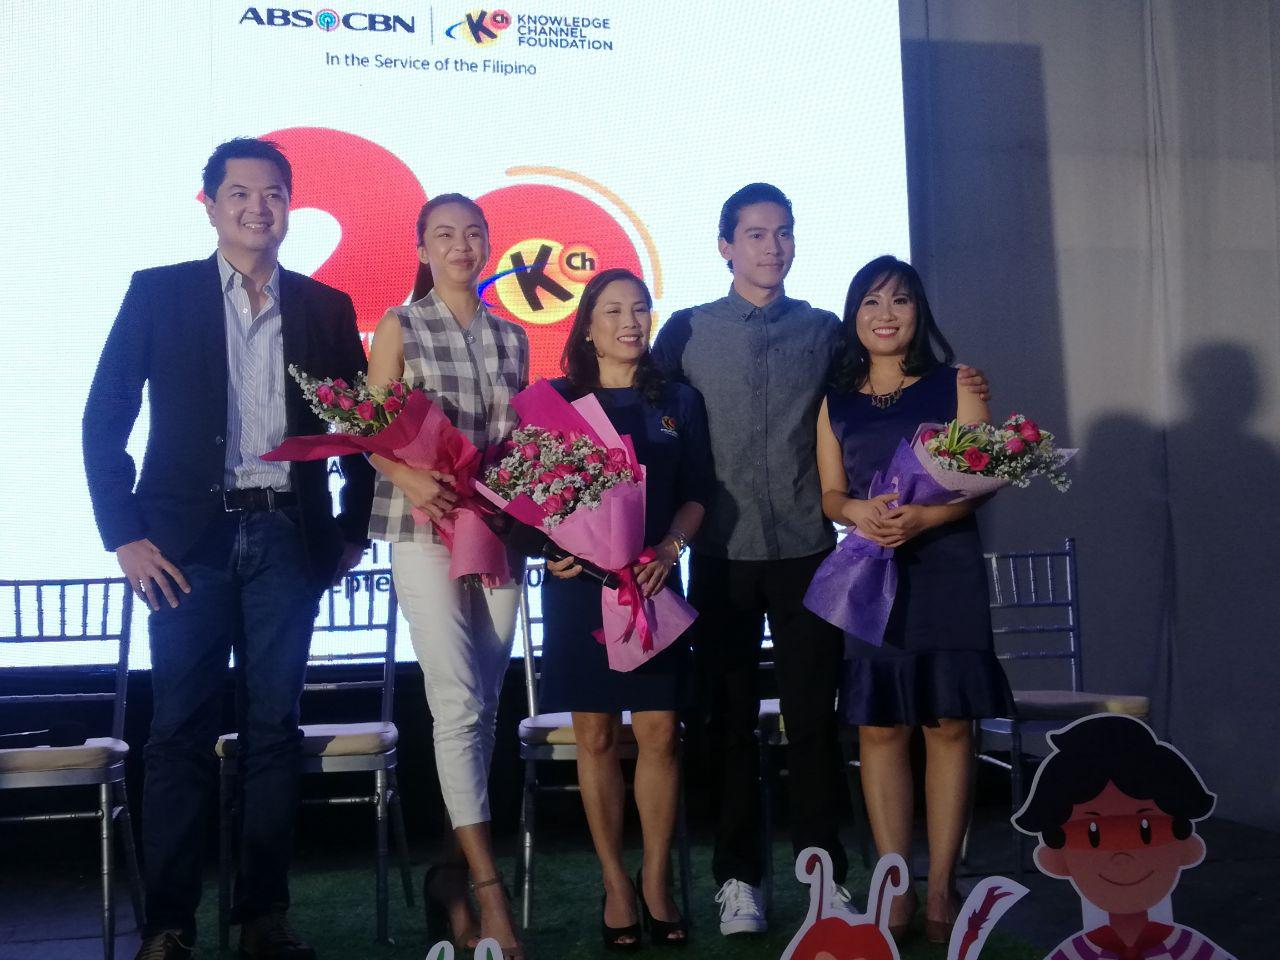 Maymay Entrata and Enchong Dee are just two of the stars that are featured in some of the shows of Knowledge Channel